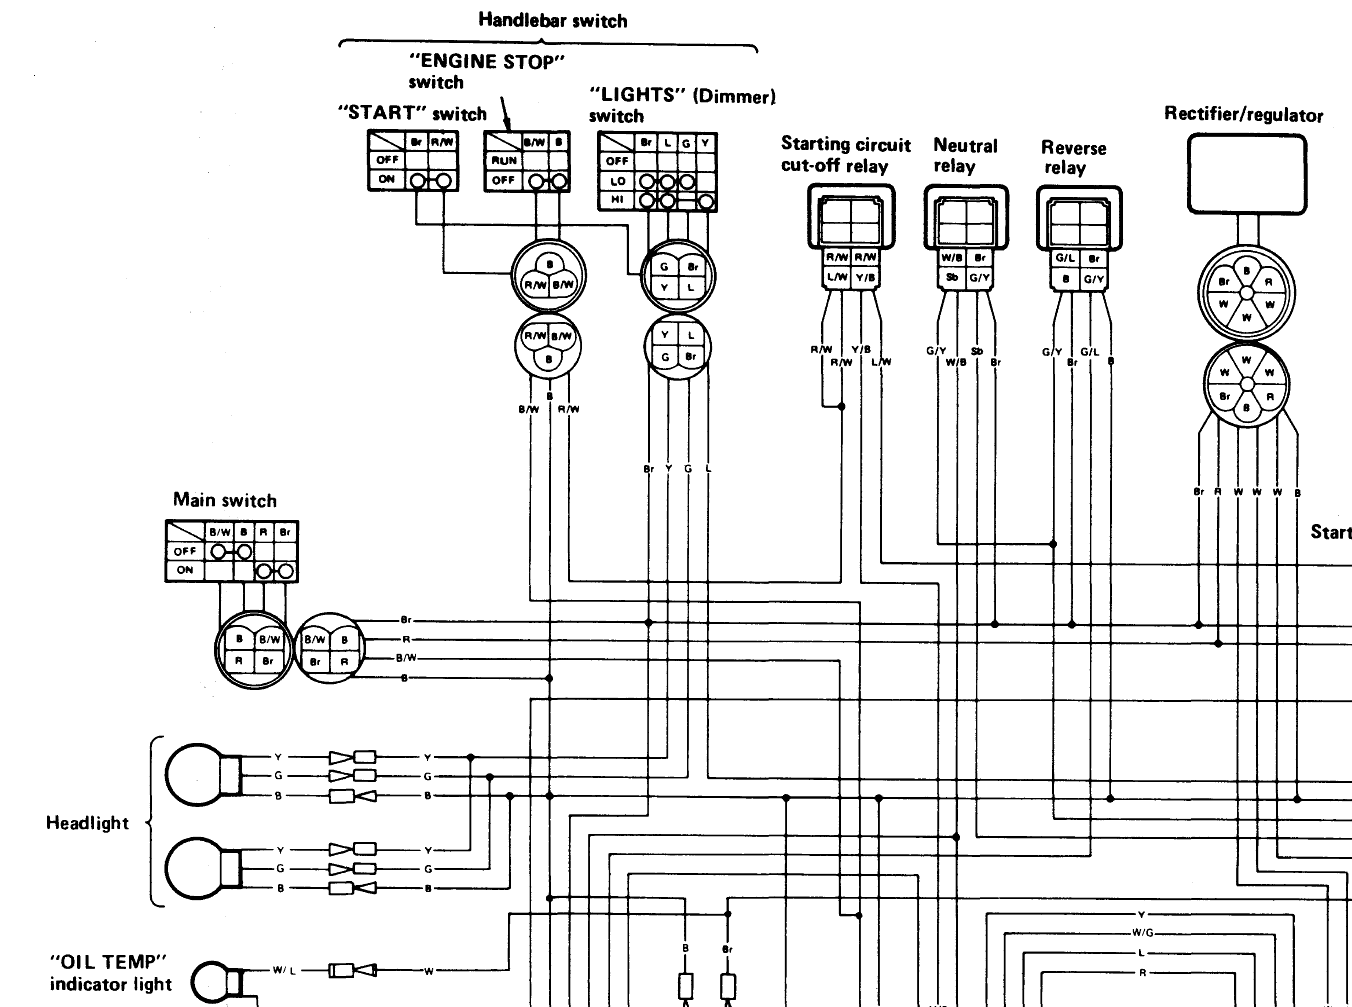 Yamaha 350 Warrior Wiring Diagram Diagram Electrical Circuit Diagram Circuit Diagram